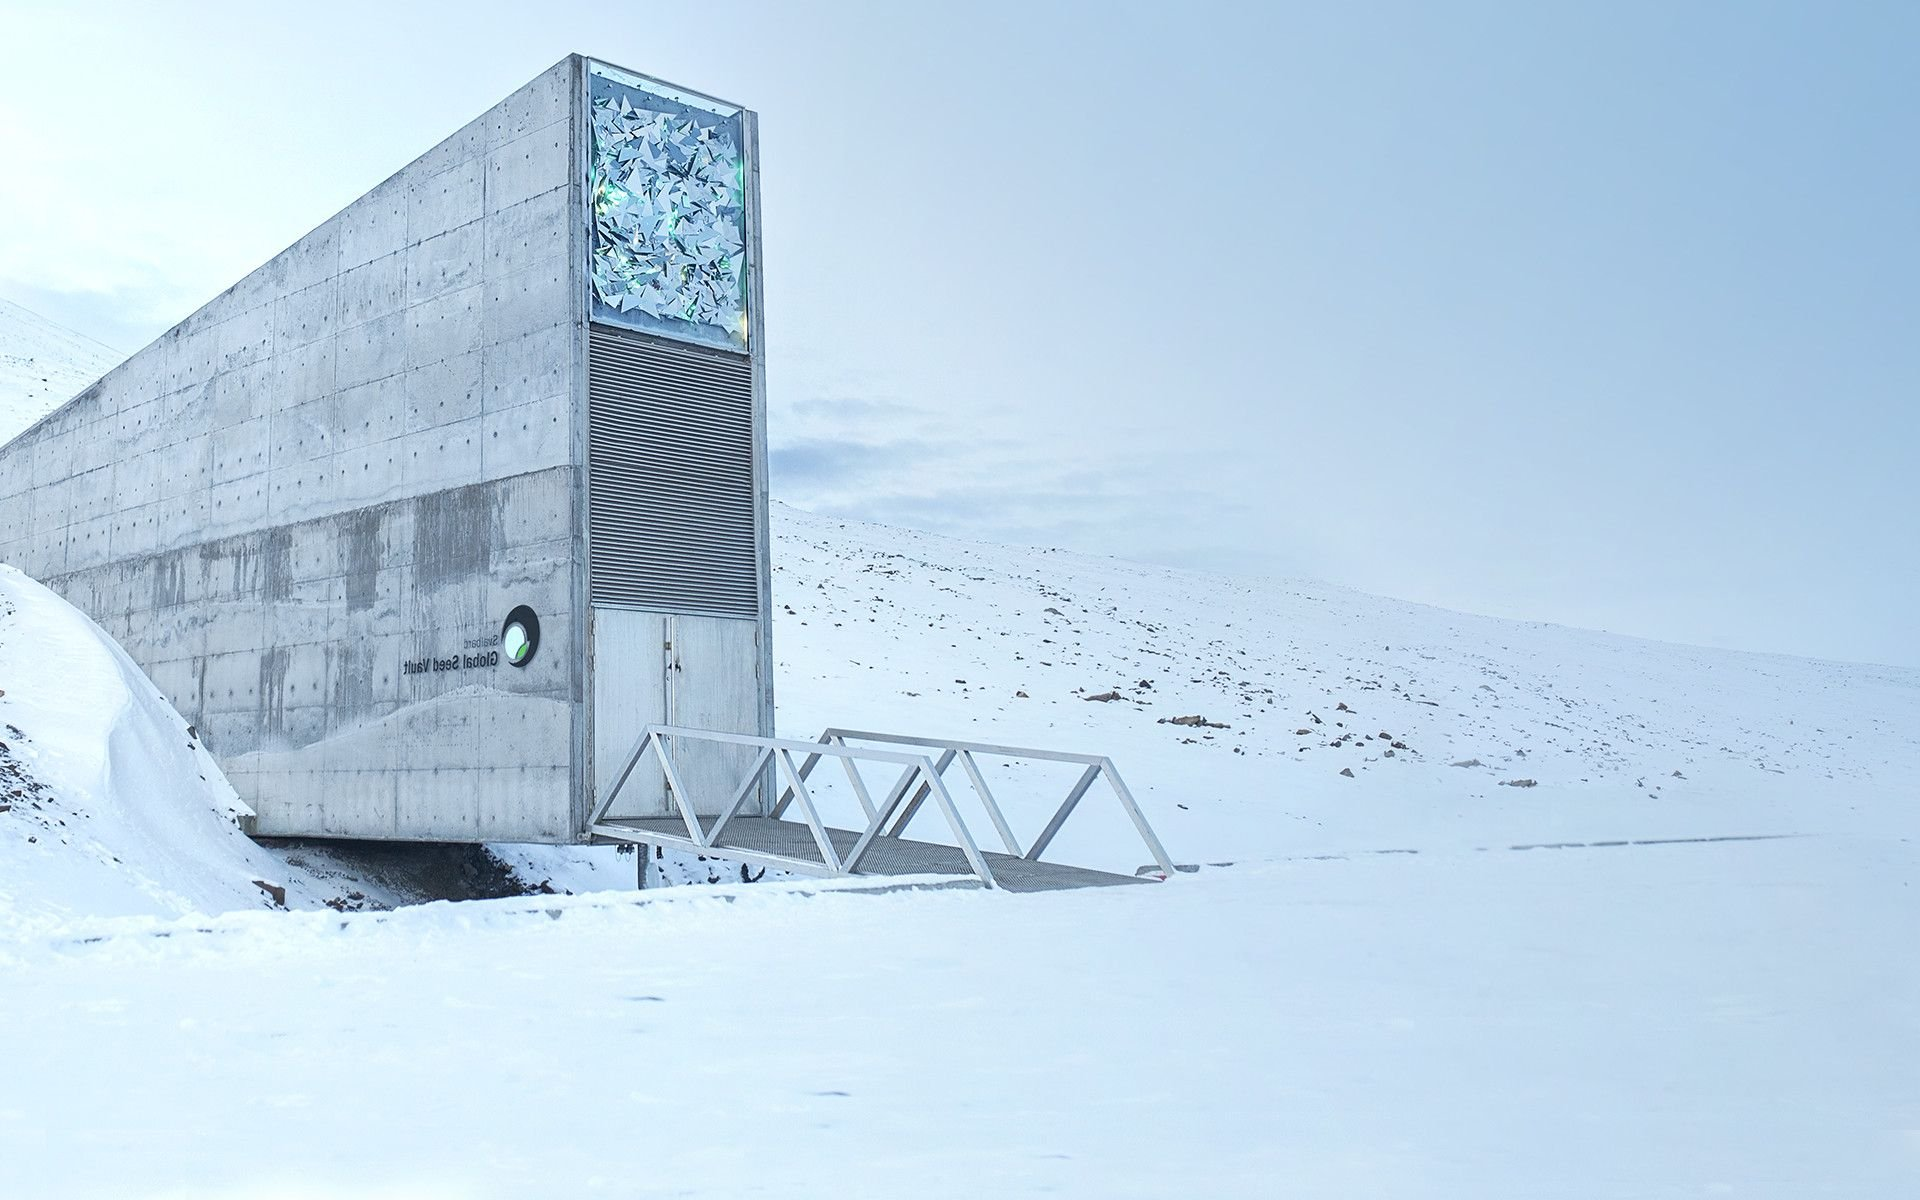 44aaeaf8 On the 10th anniversary of the Svalbard Global Seed Vault, a call ...